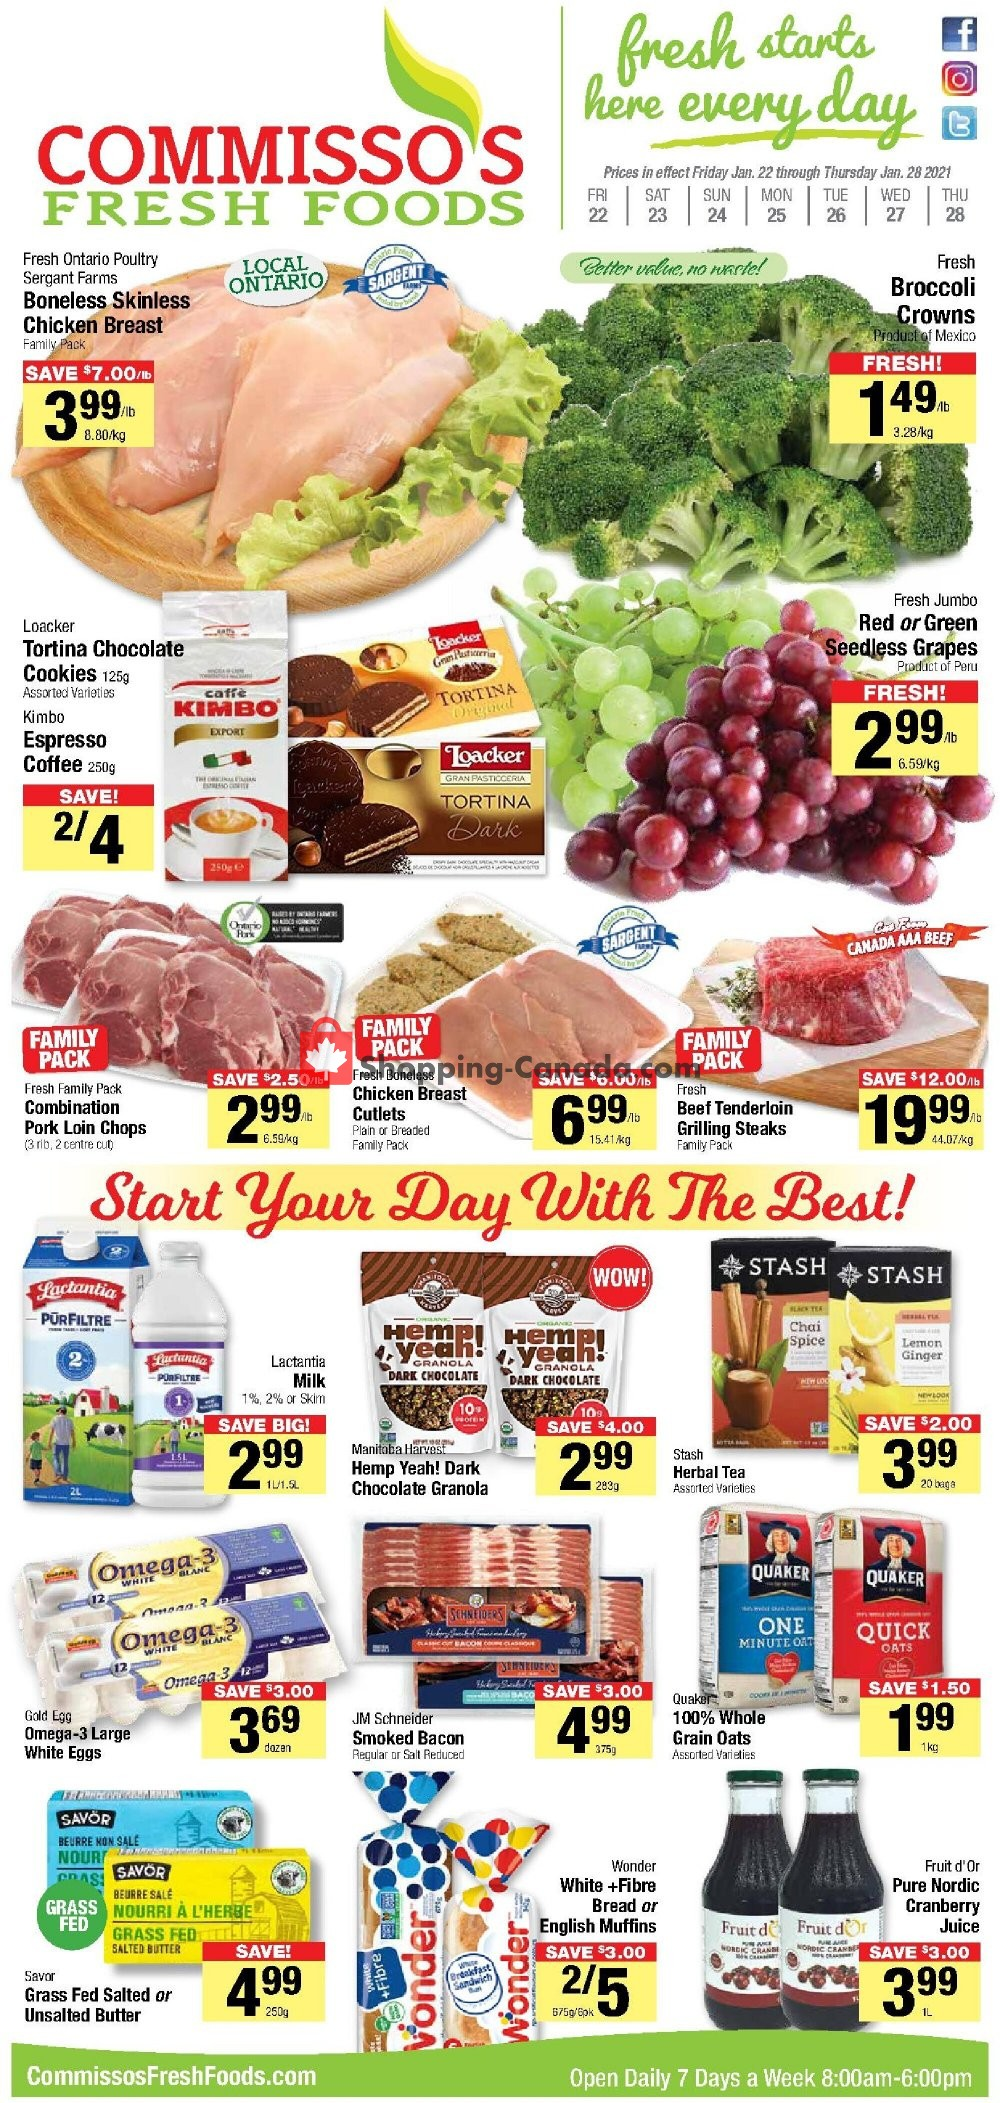 Flyer Commisso's Fresh Foods Canada - from Thursday January 28, 2021 to Thursday January 28, 2021